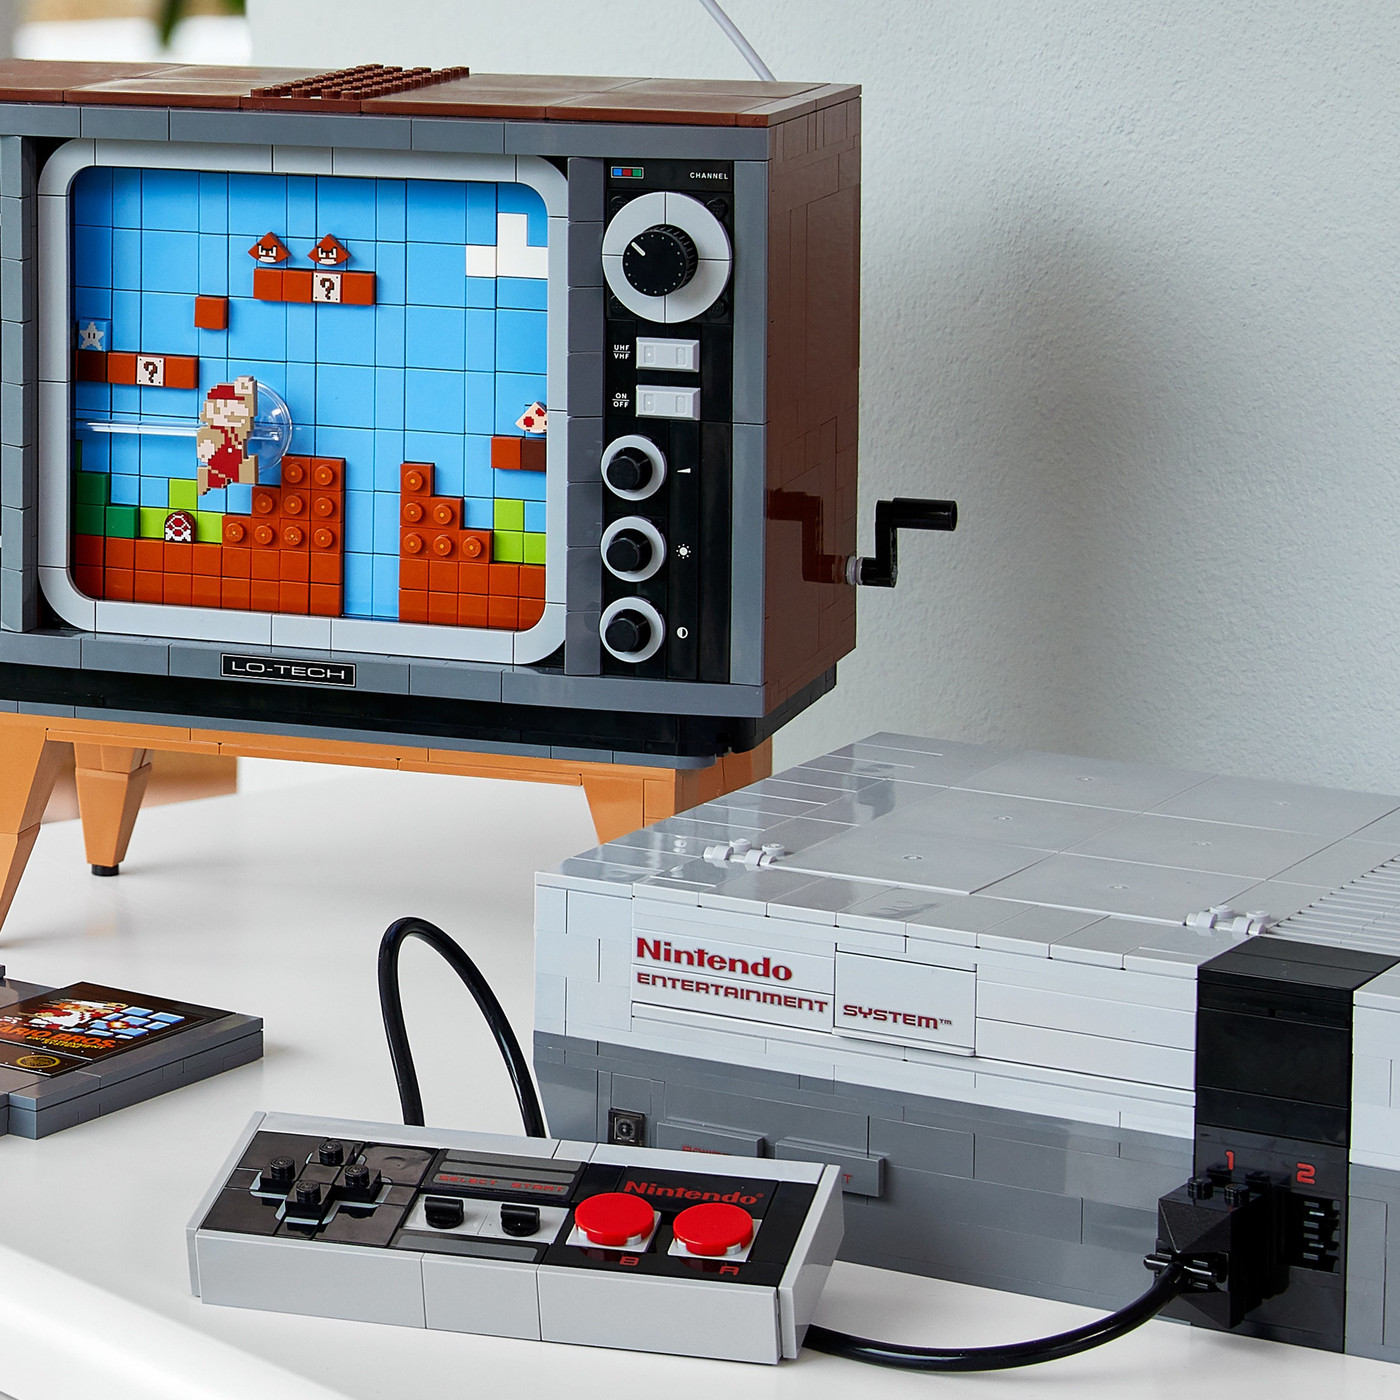 Lego made a 2,600-piece replica of playing Mario on the NES - The Verge